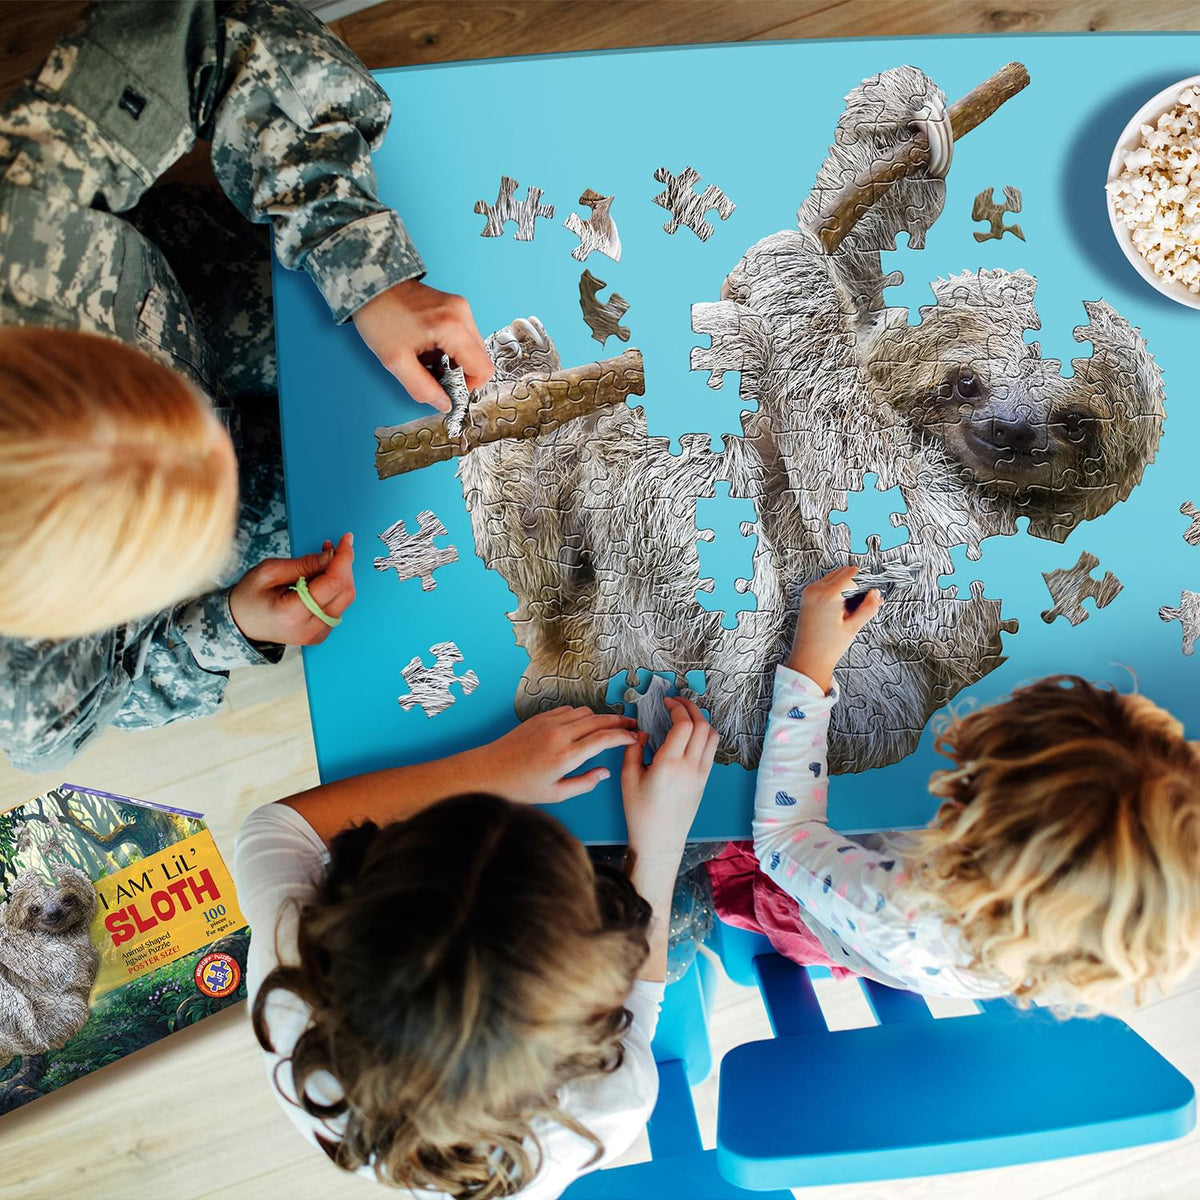 I AM Lil Sloth 100 Piece Animal-Shaped Jigsaw Puzzle